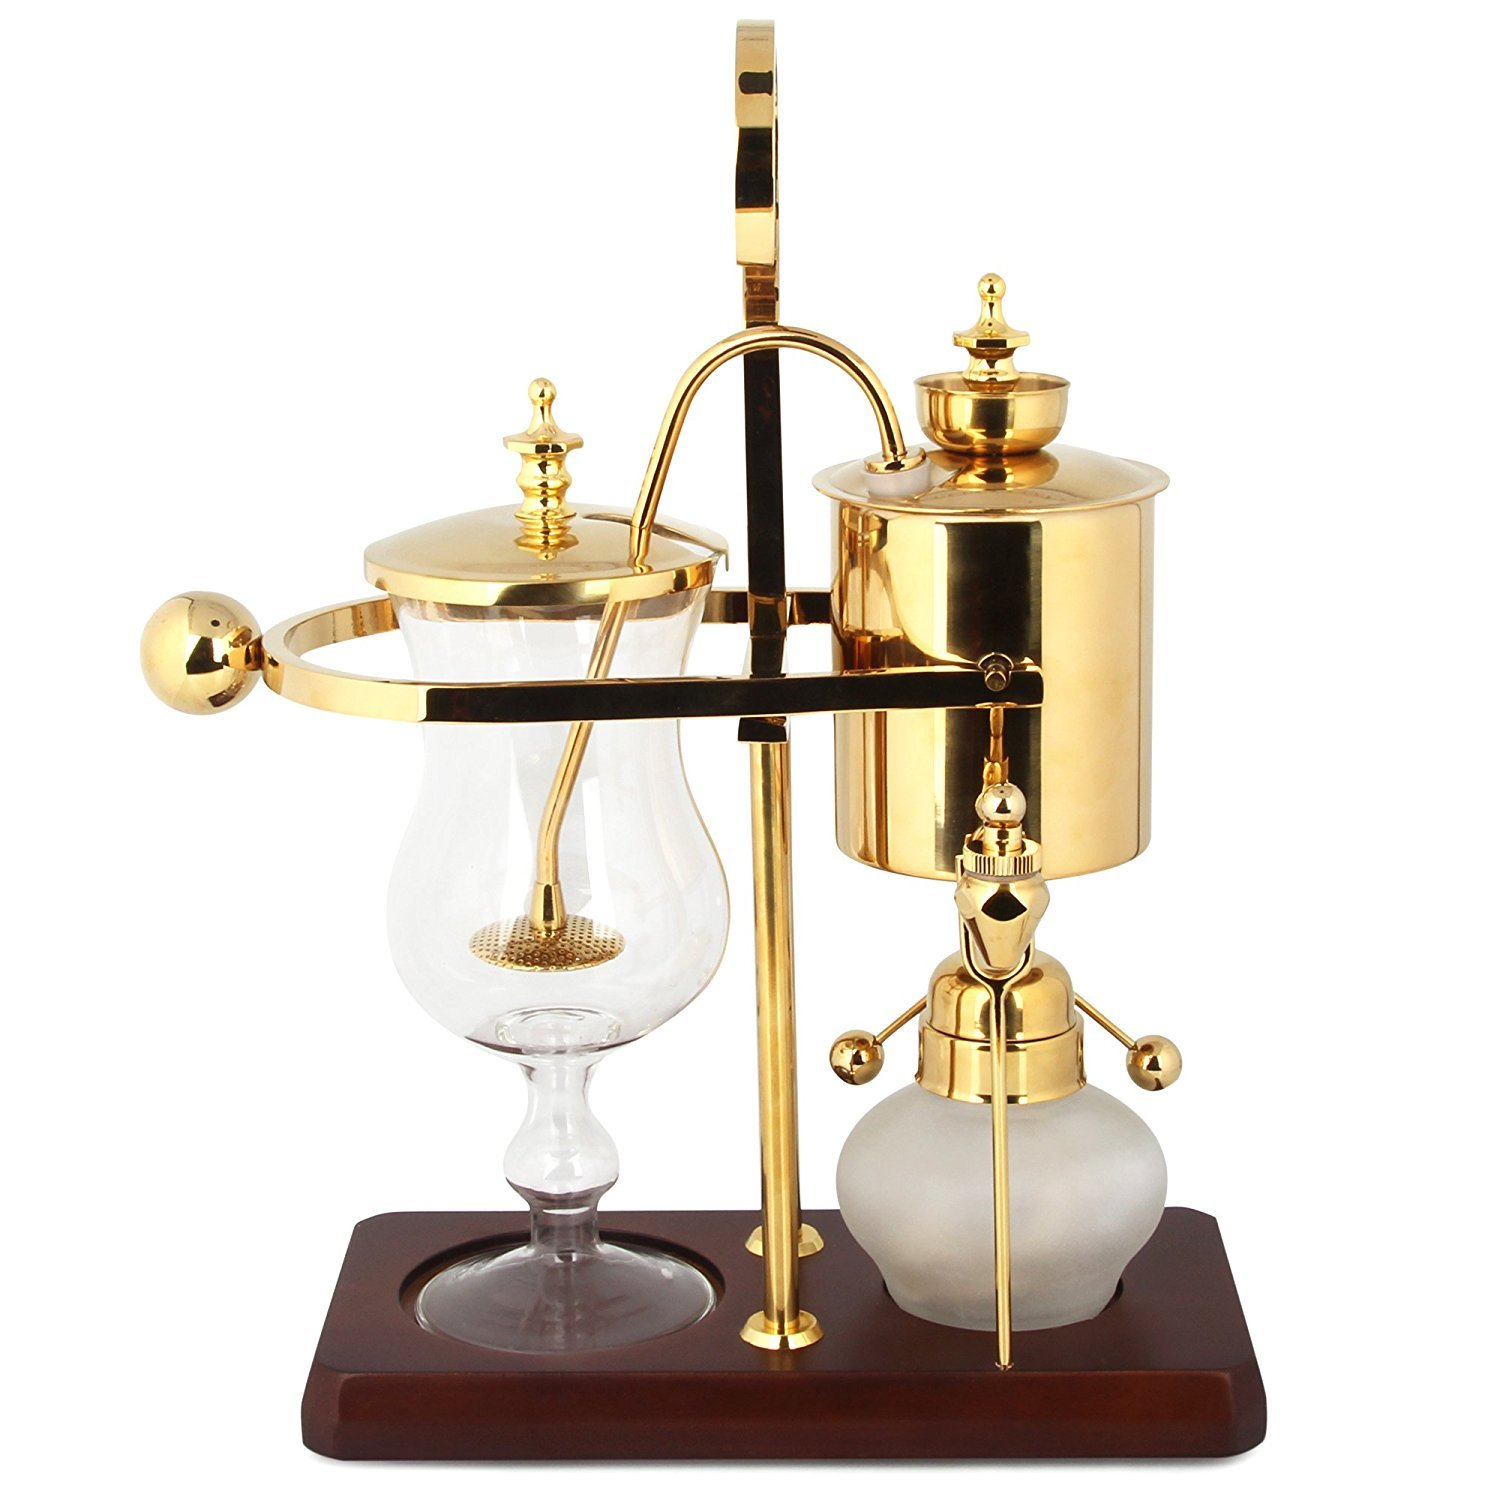 Kendal Balance Syphon Siphon Coffee Maker Gold Color, 1 Set Shining Image